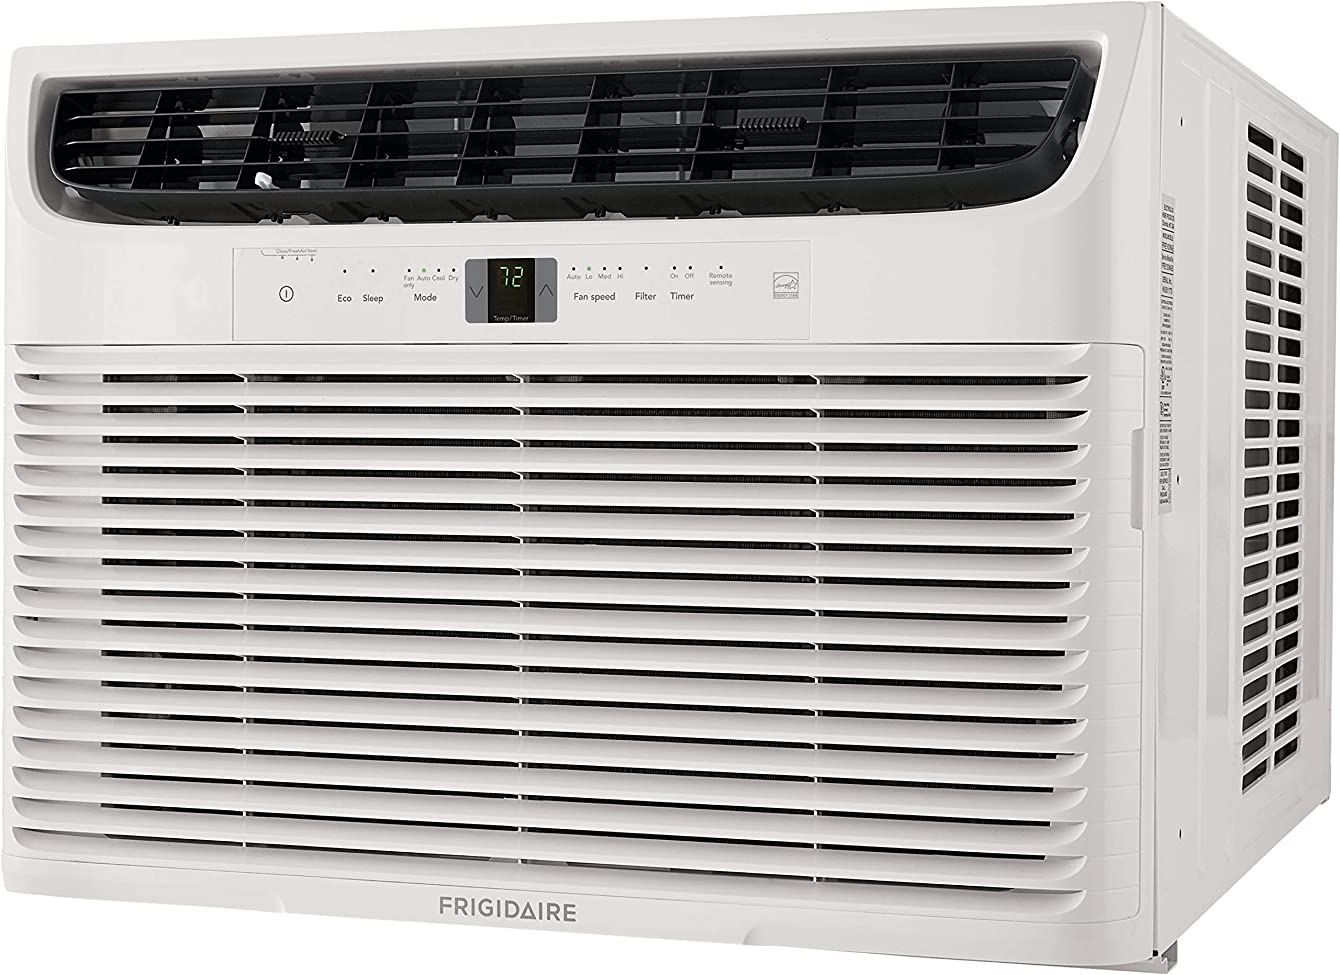 Frigidaire Energy Star 18,000 BTU 230V Window-Mounted Median Air Conditioner with Full-Function Remote Control, White